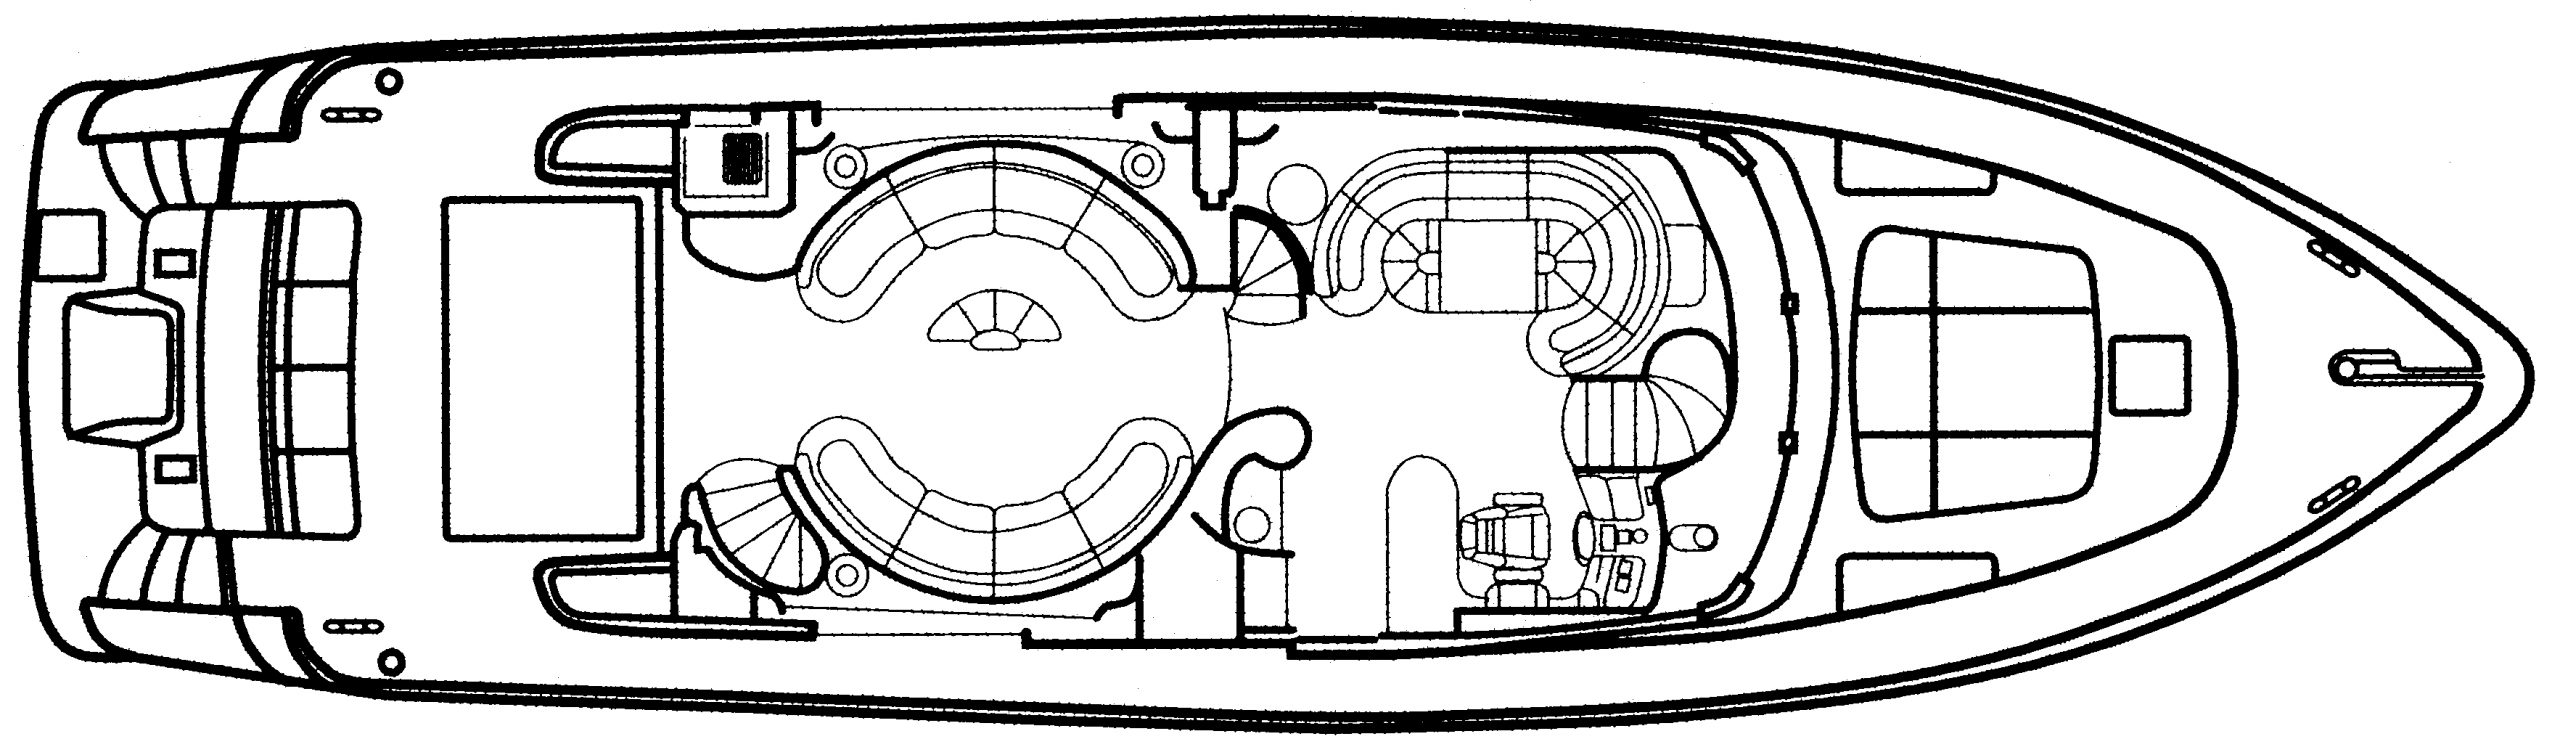 70 Sea Jet Floor Plan 2